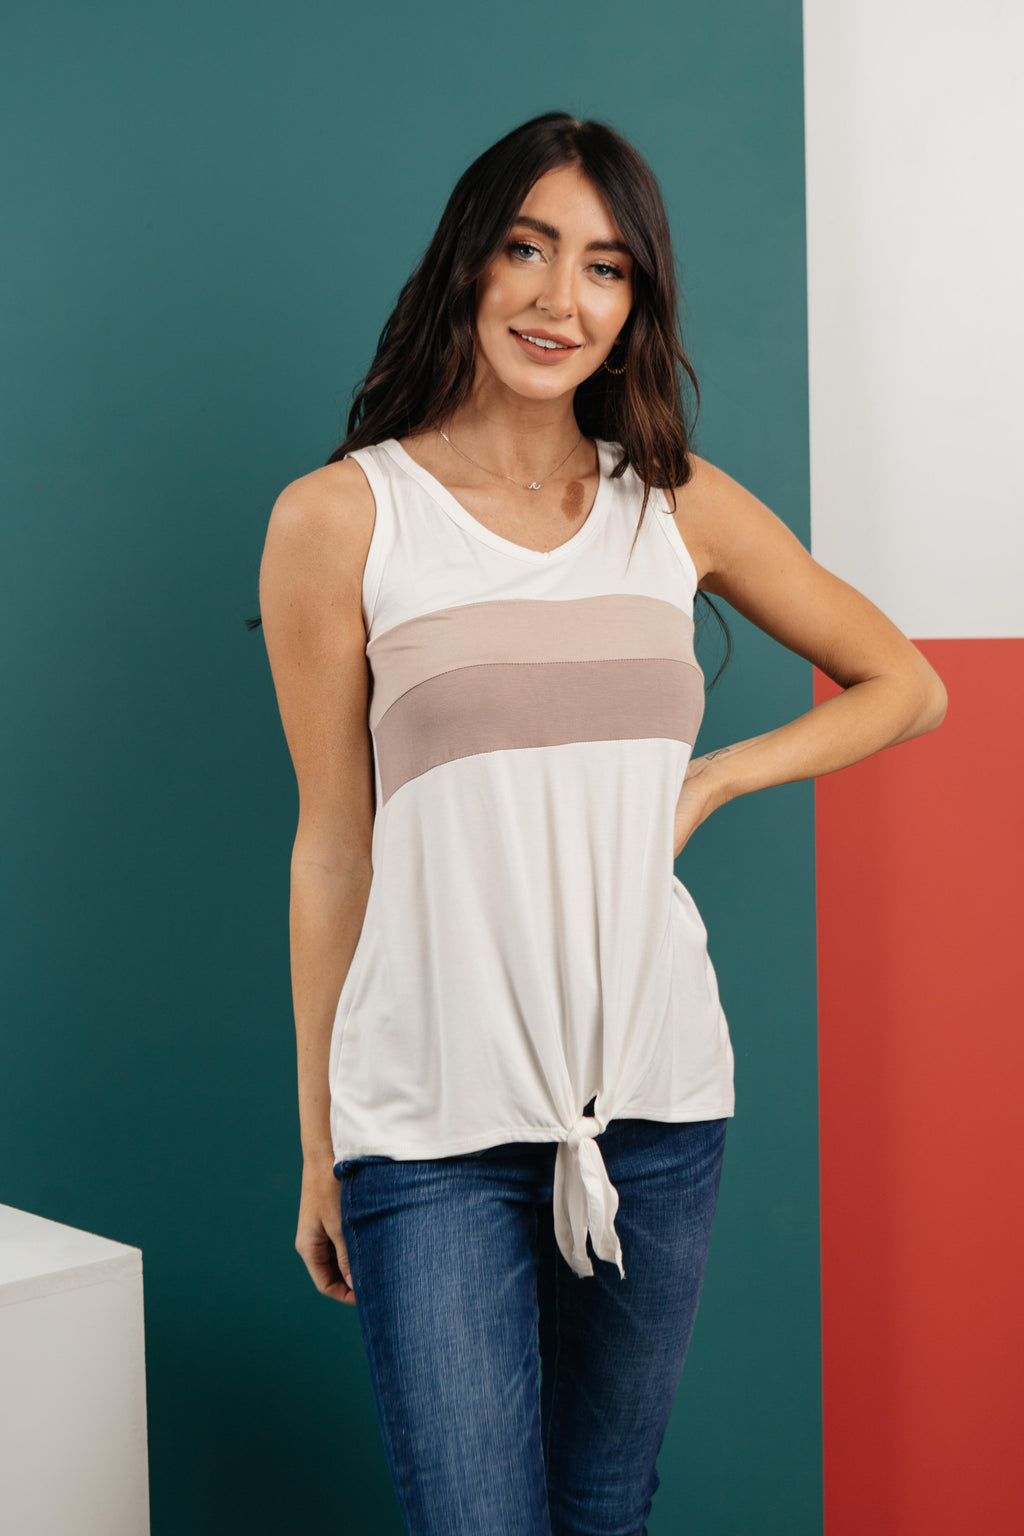 Keep Your Stripes Close In Ivory-1-15-2021, 1-5-2021, 1XL, 2XL, 3XL, Bonus, Group A, Group B, Group C, Group T, Group U, Group X, Group Y, Group Z, Large, Made in the USA, Medium, Small, Tops, XL, XS-Womens Artisan USA American Made Clothing Accessories